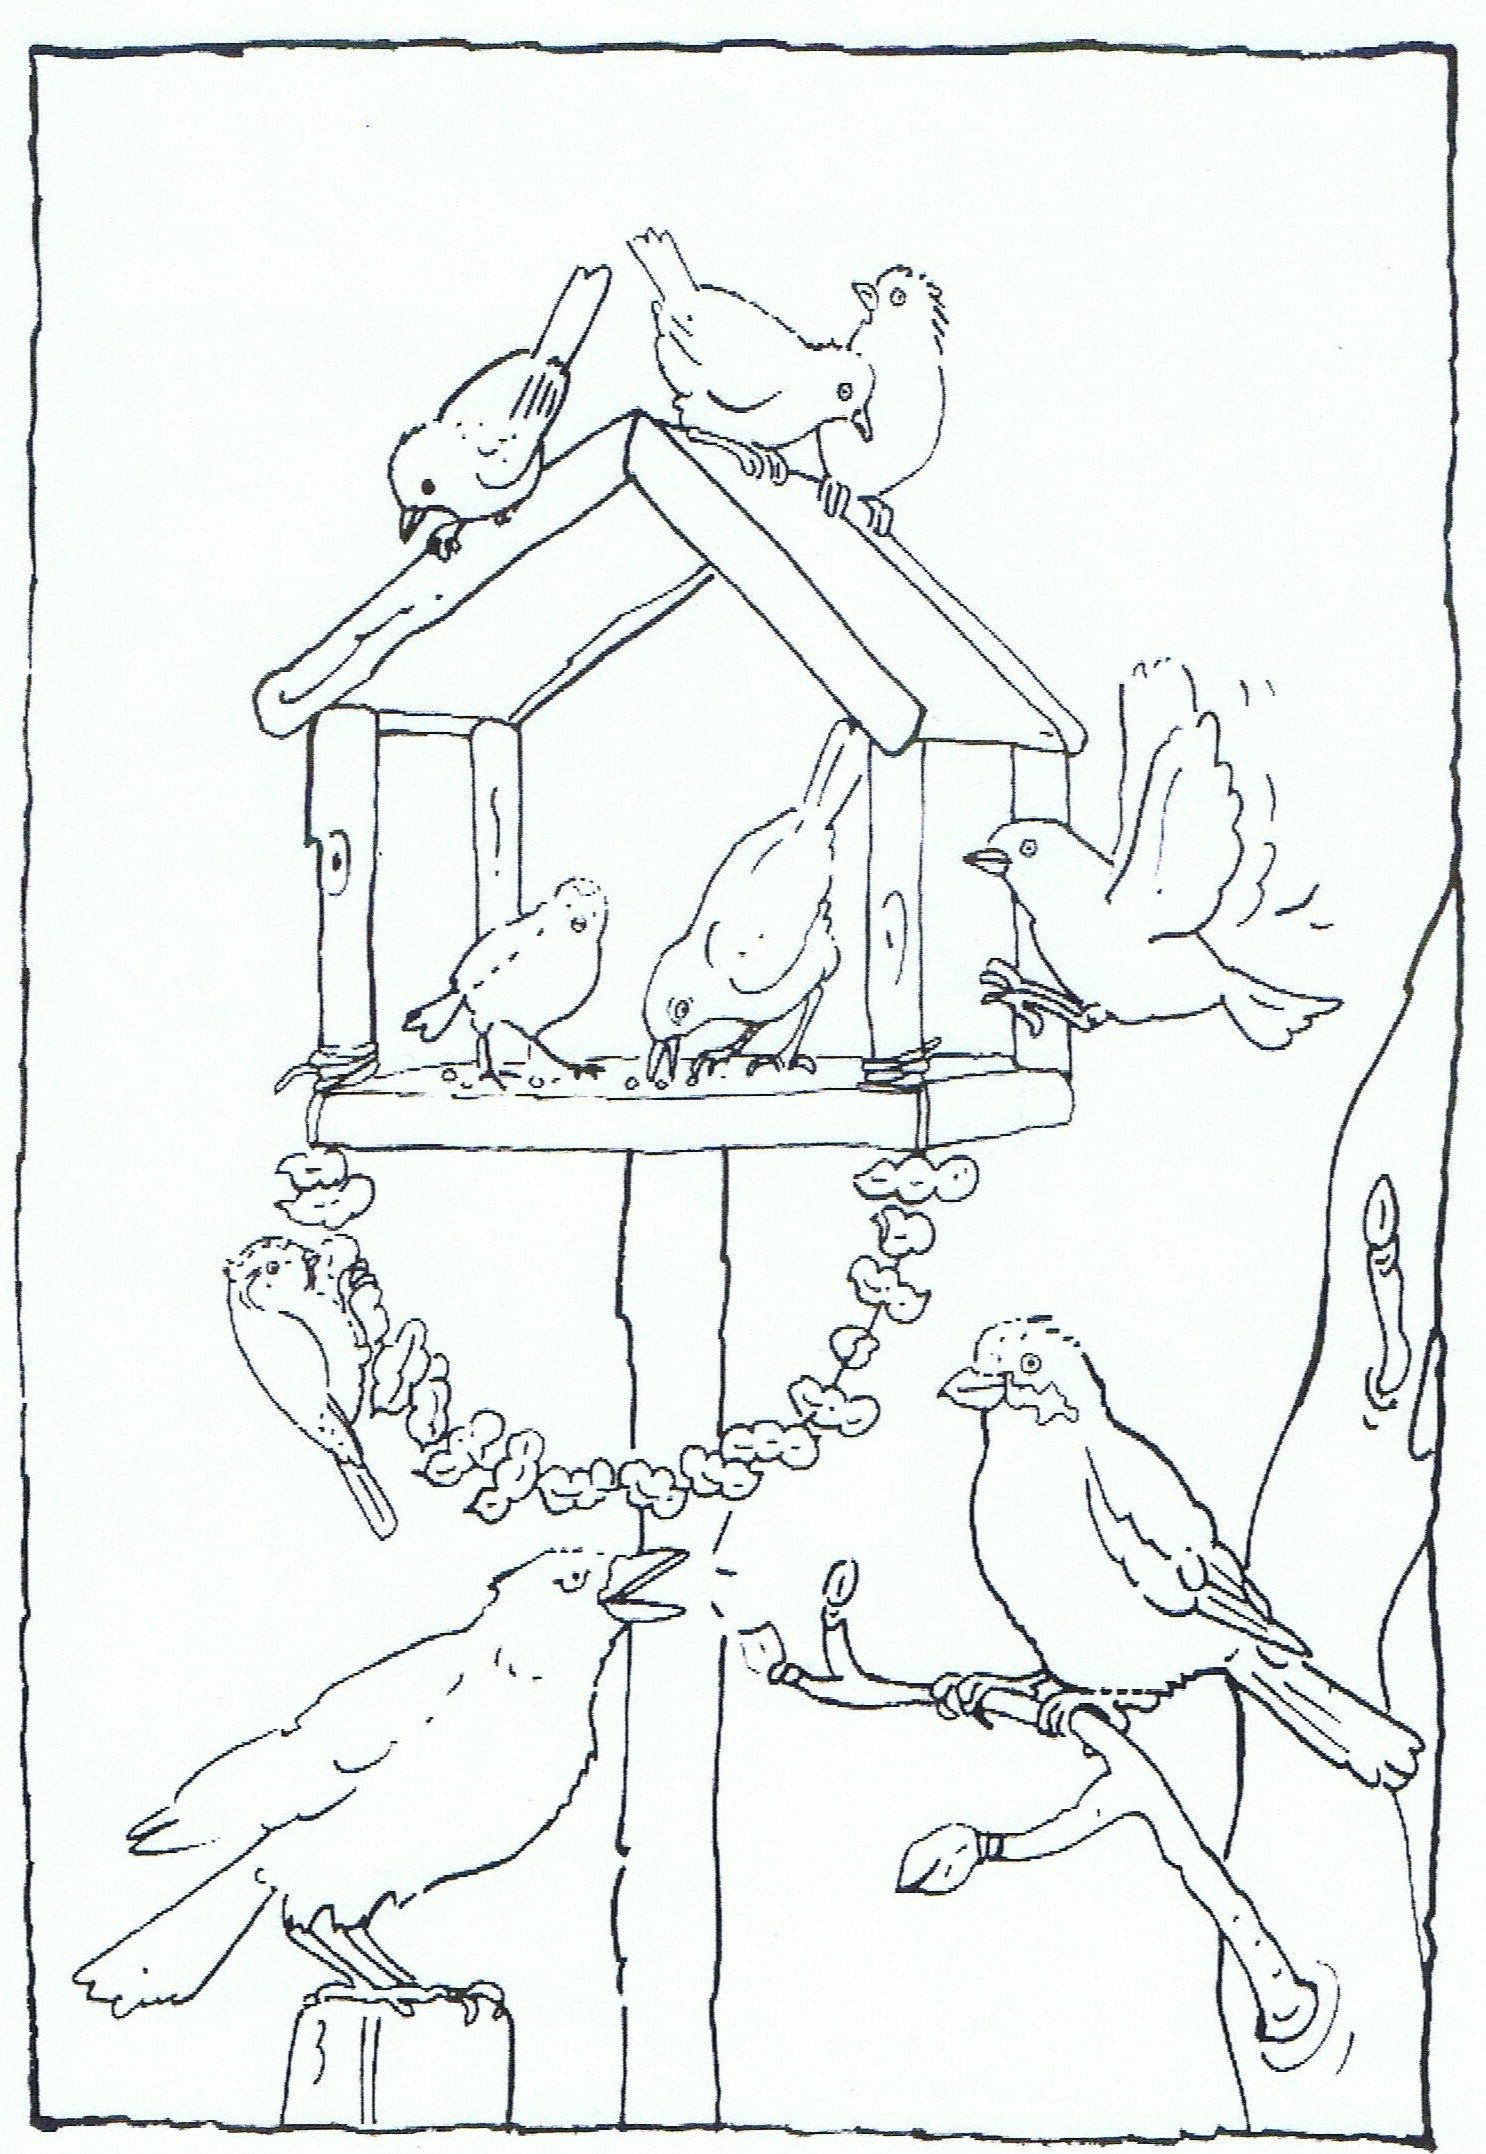 feeding birds in your garden coloring page vogels voeren in je